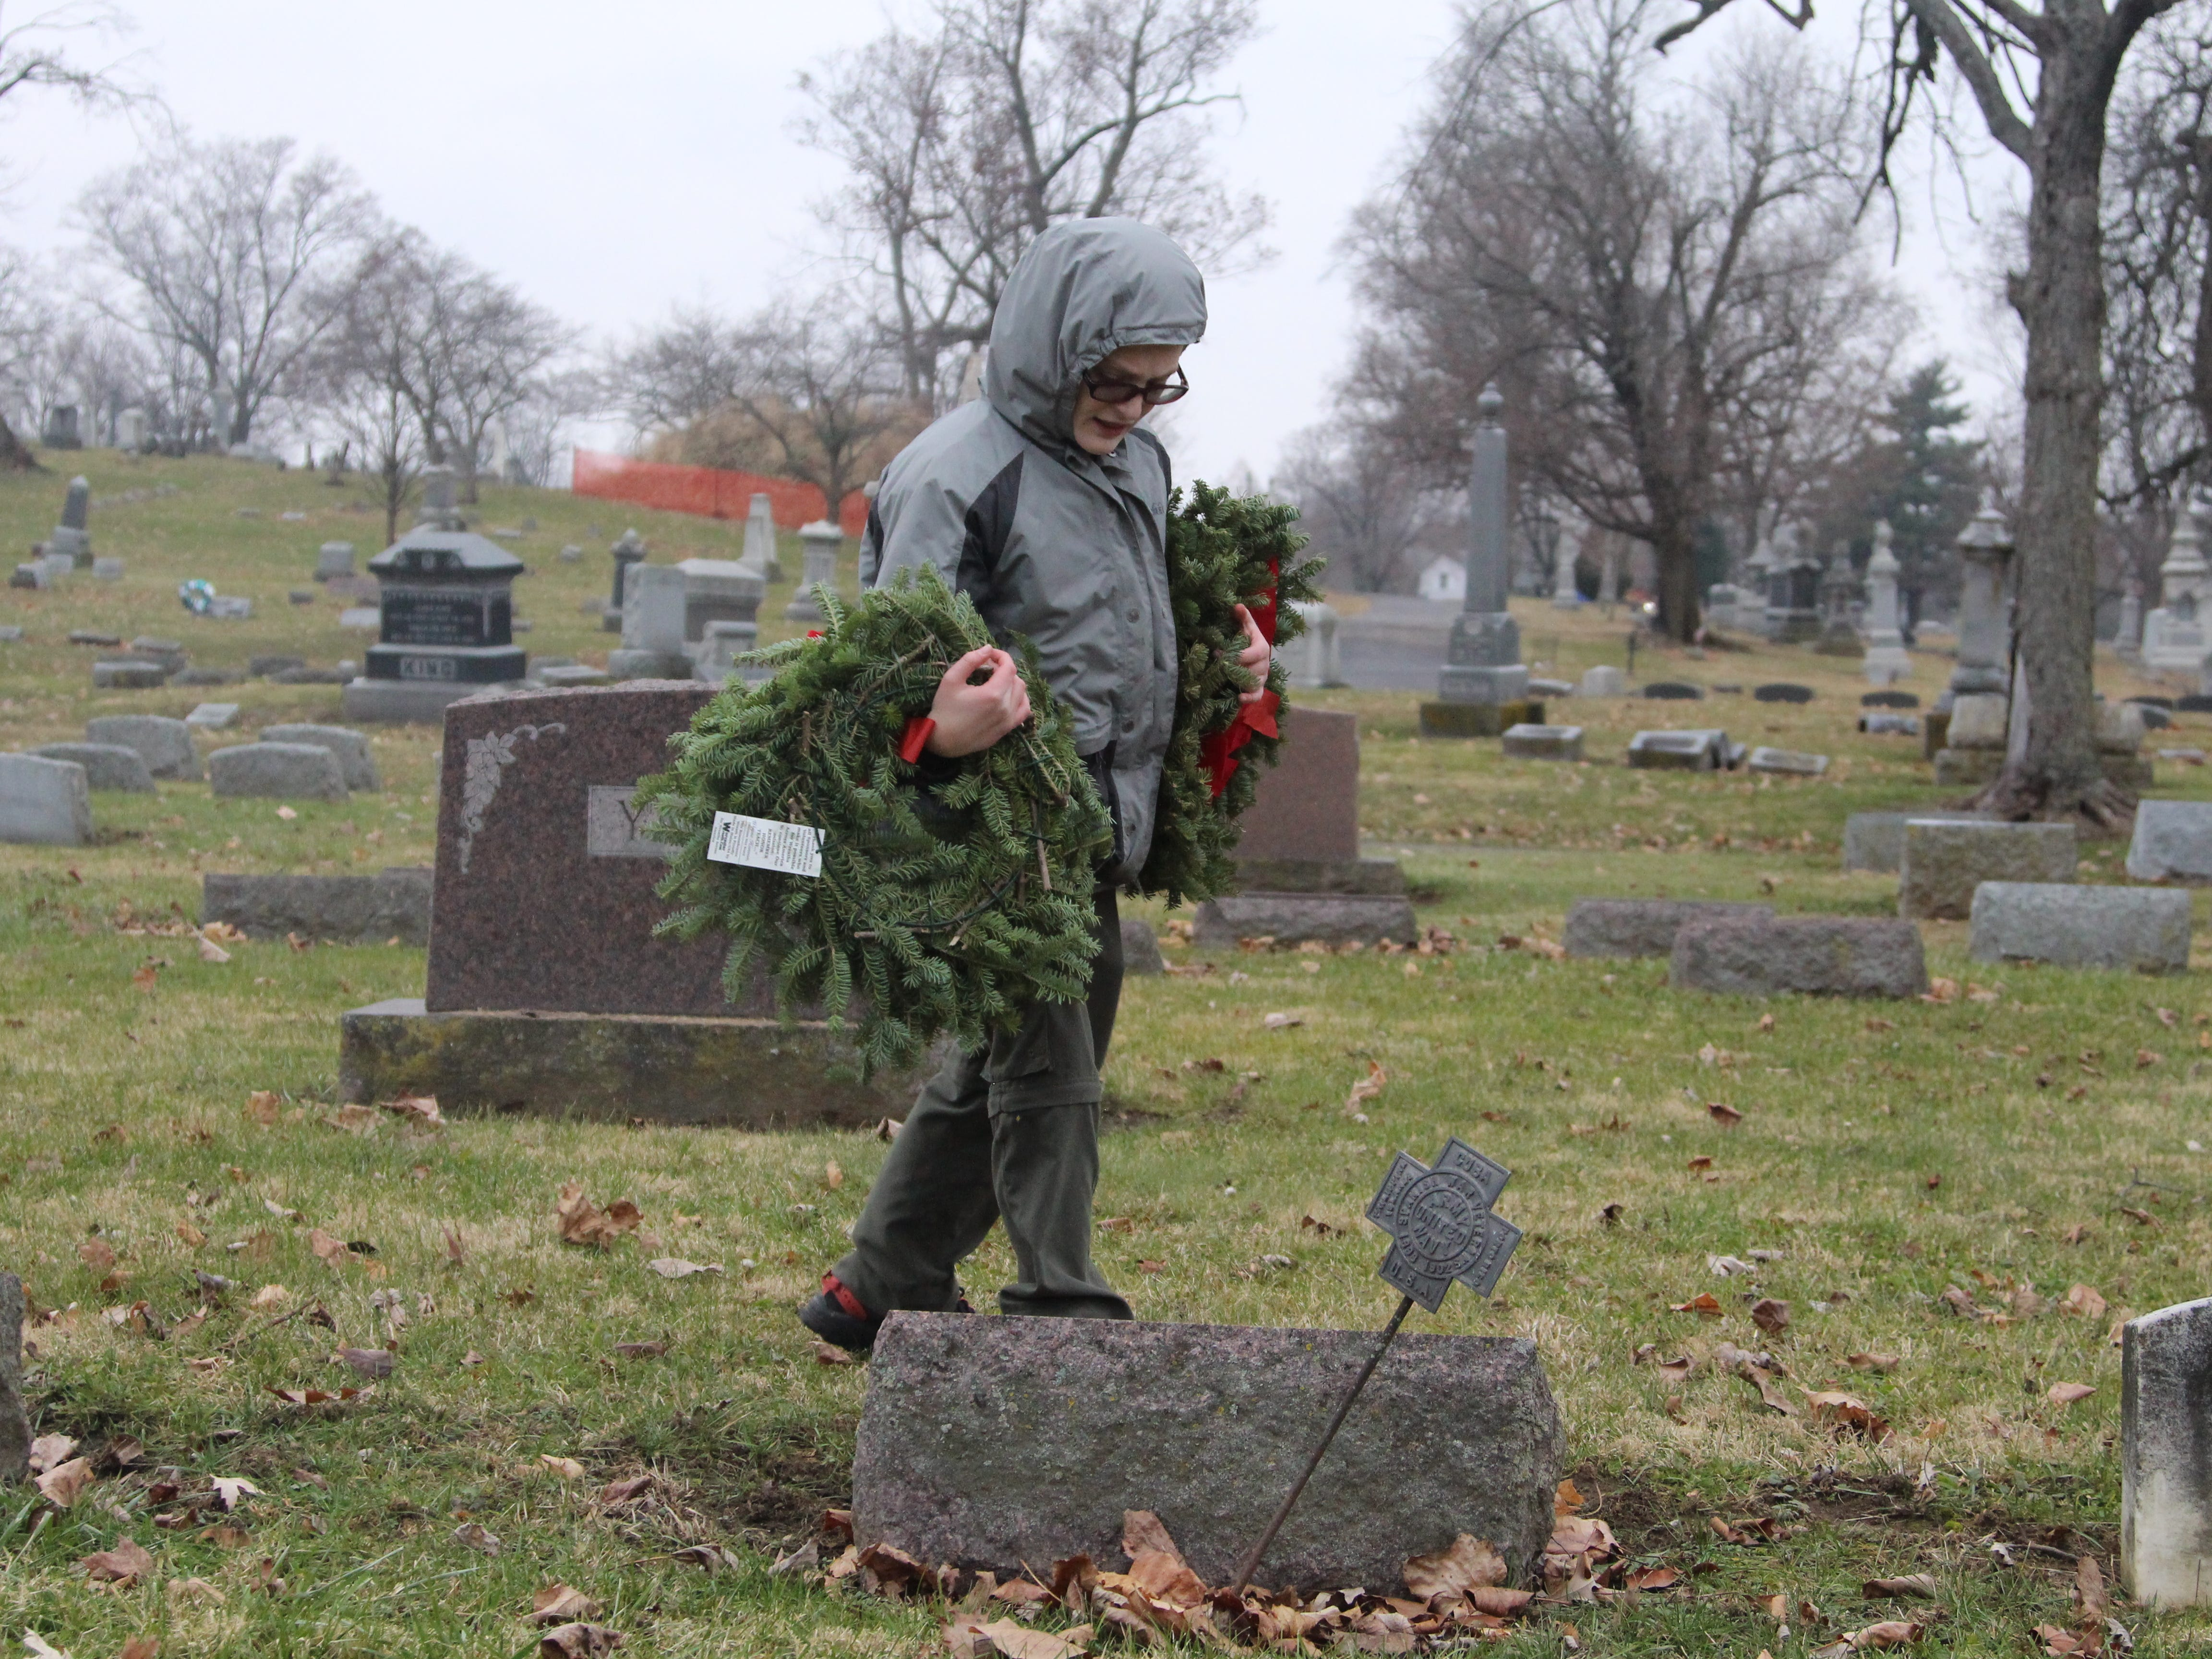 Zach Wolfe, 11, places wreaths on the graves of local veterans Saturday at Marion Cemetery as part of Wreaths Across America, a nationwide effort to honor veterans during the holiday season. Wolfe is a boy scout in Troop 46 in Marion.